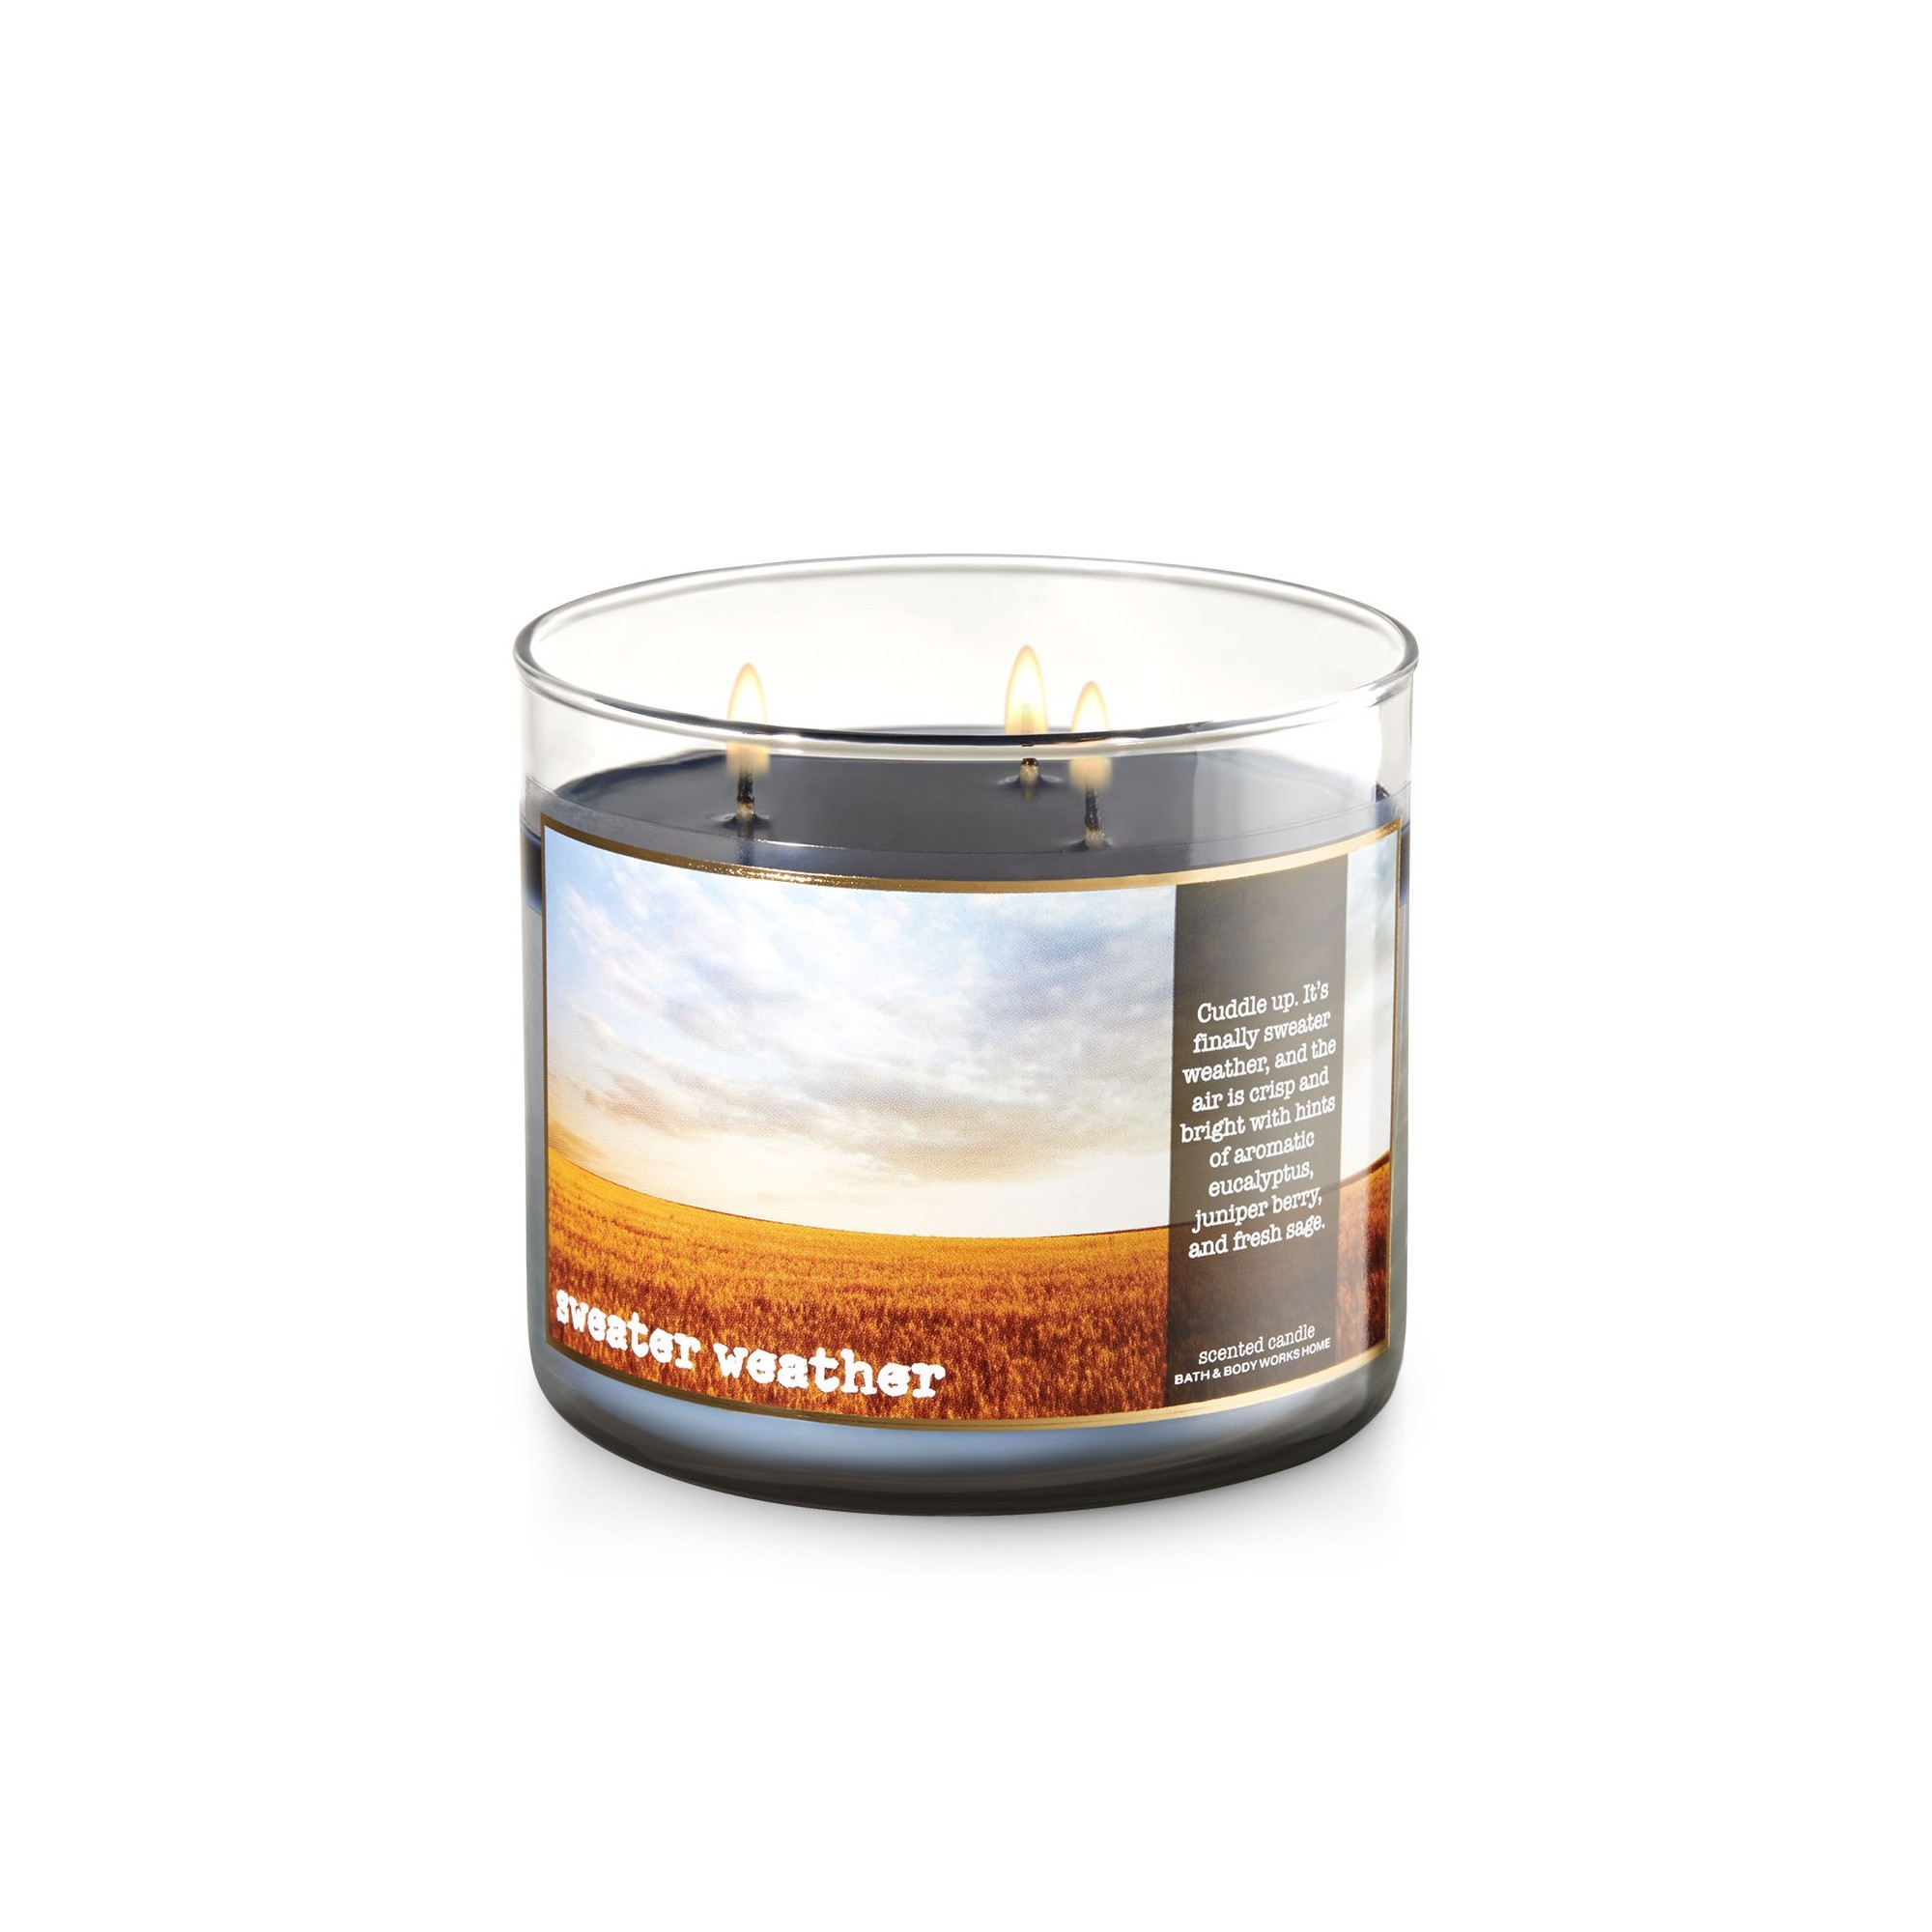 Bath Body Works Sweater Weather 3 Wick Scented Candle Bougie